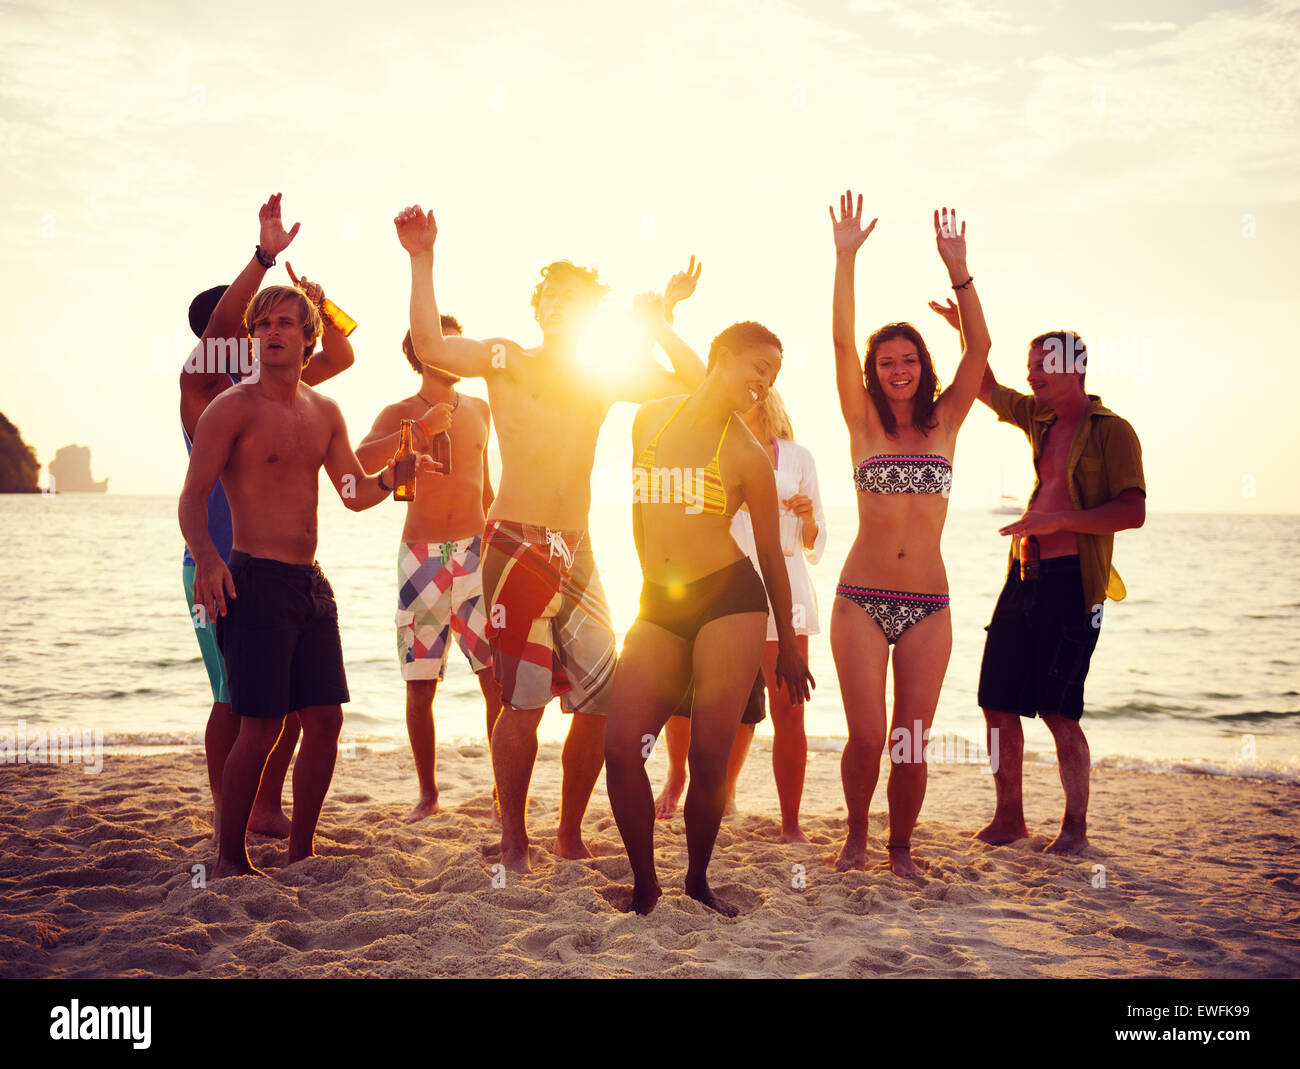 Groupe de personnes sur la plage. Photo Stock